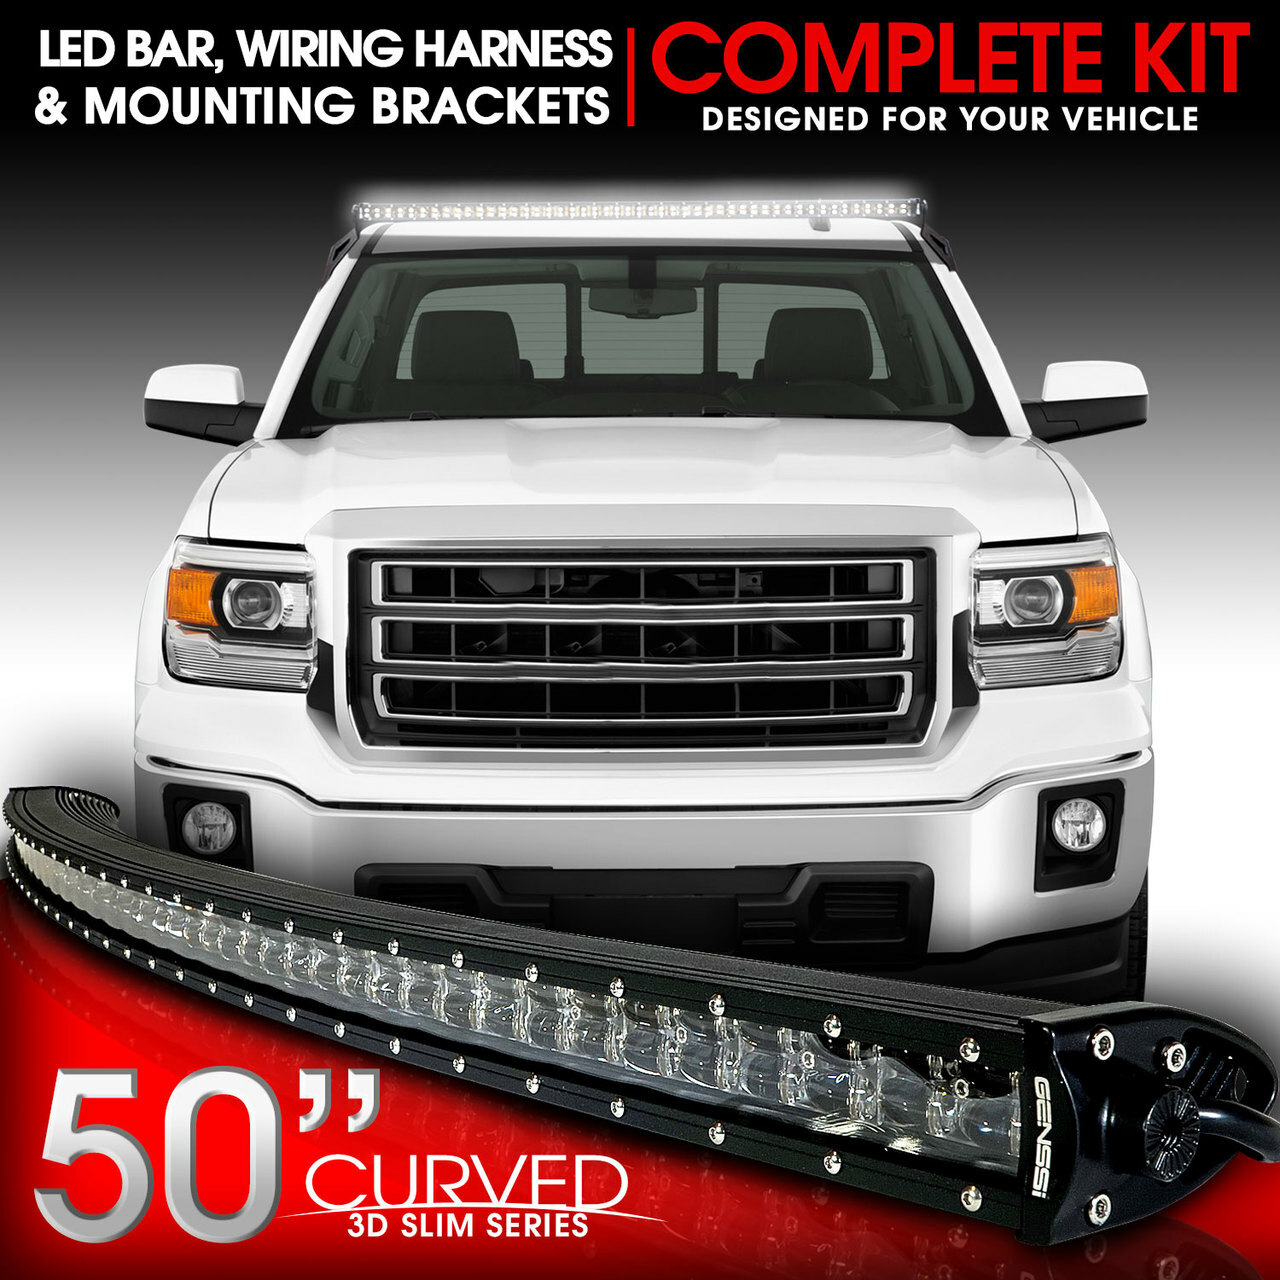 2015 Gmc 4 3 Wiring Harness Basic Guide Diagram 3l Led Light Bar Curved 288w 50 Inches Bracket Kit For Rh Genssi Com 1987 Truck Headlight